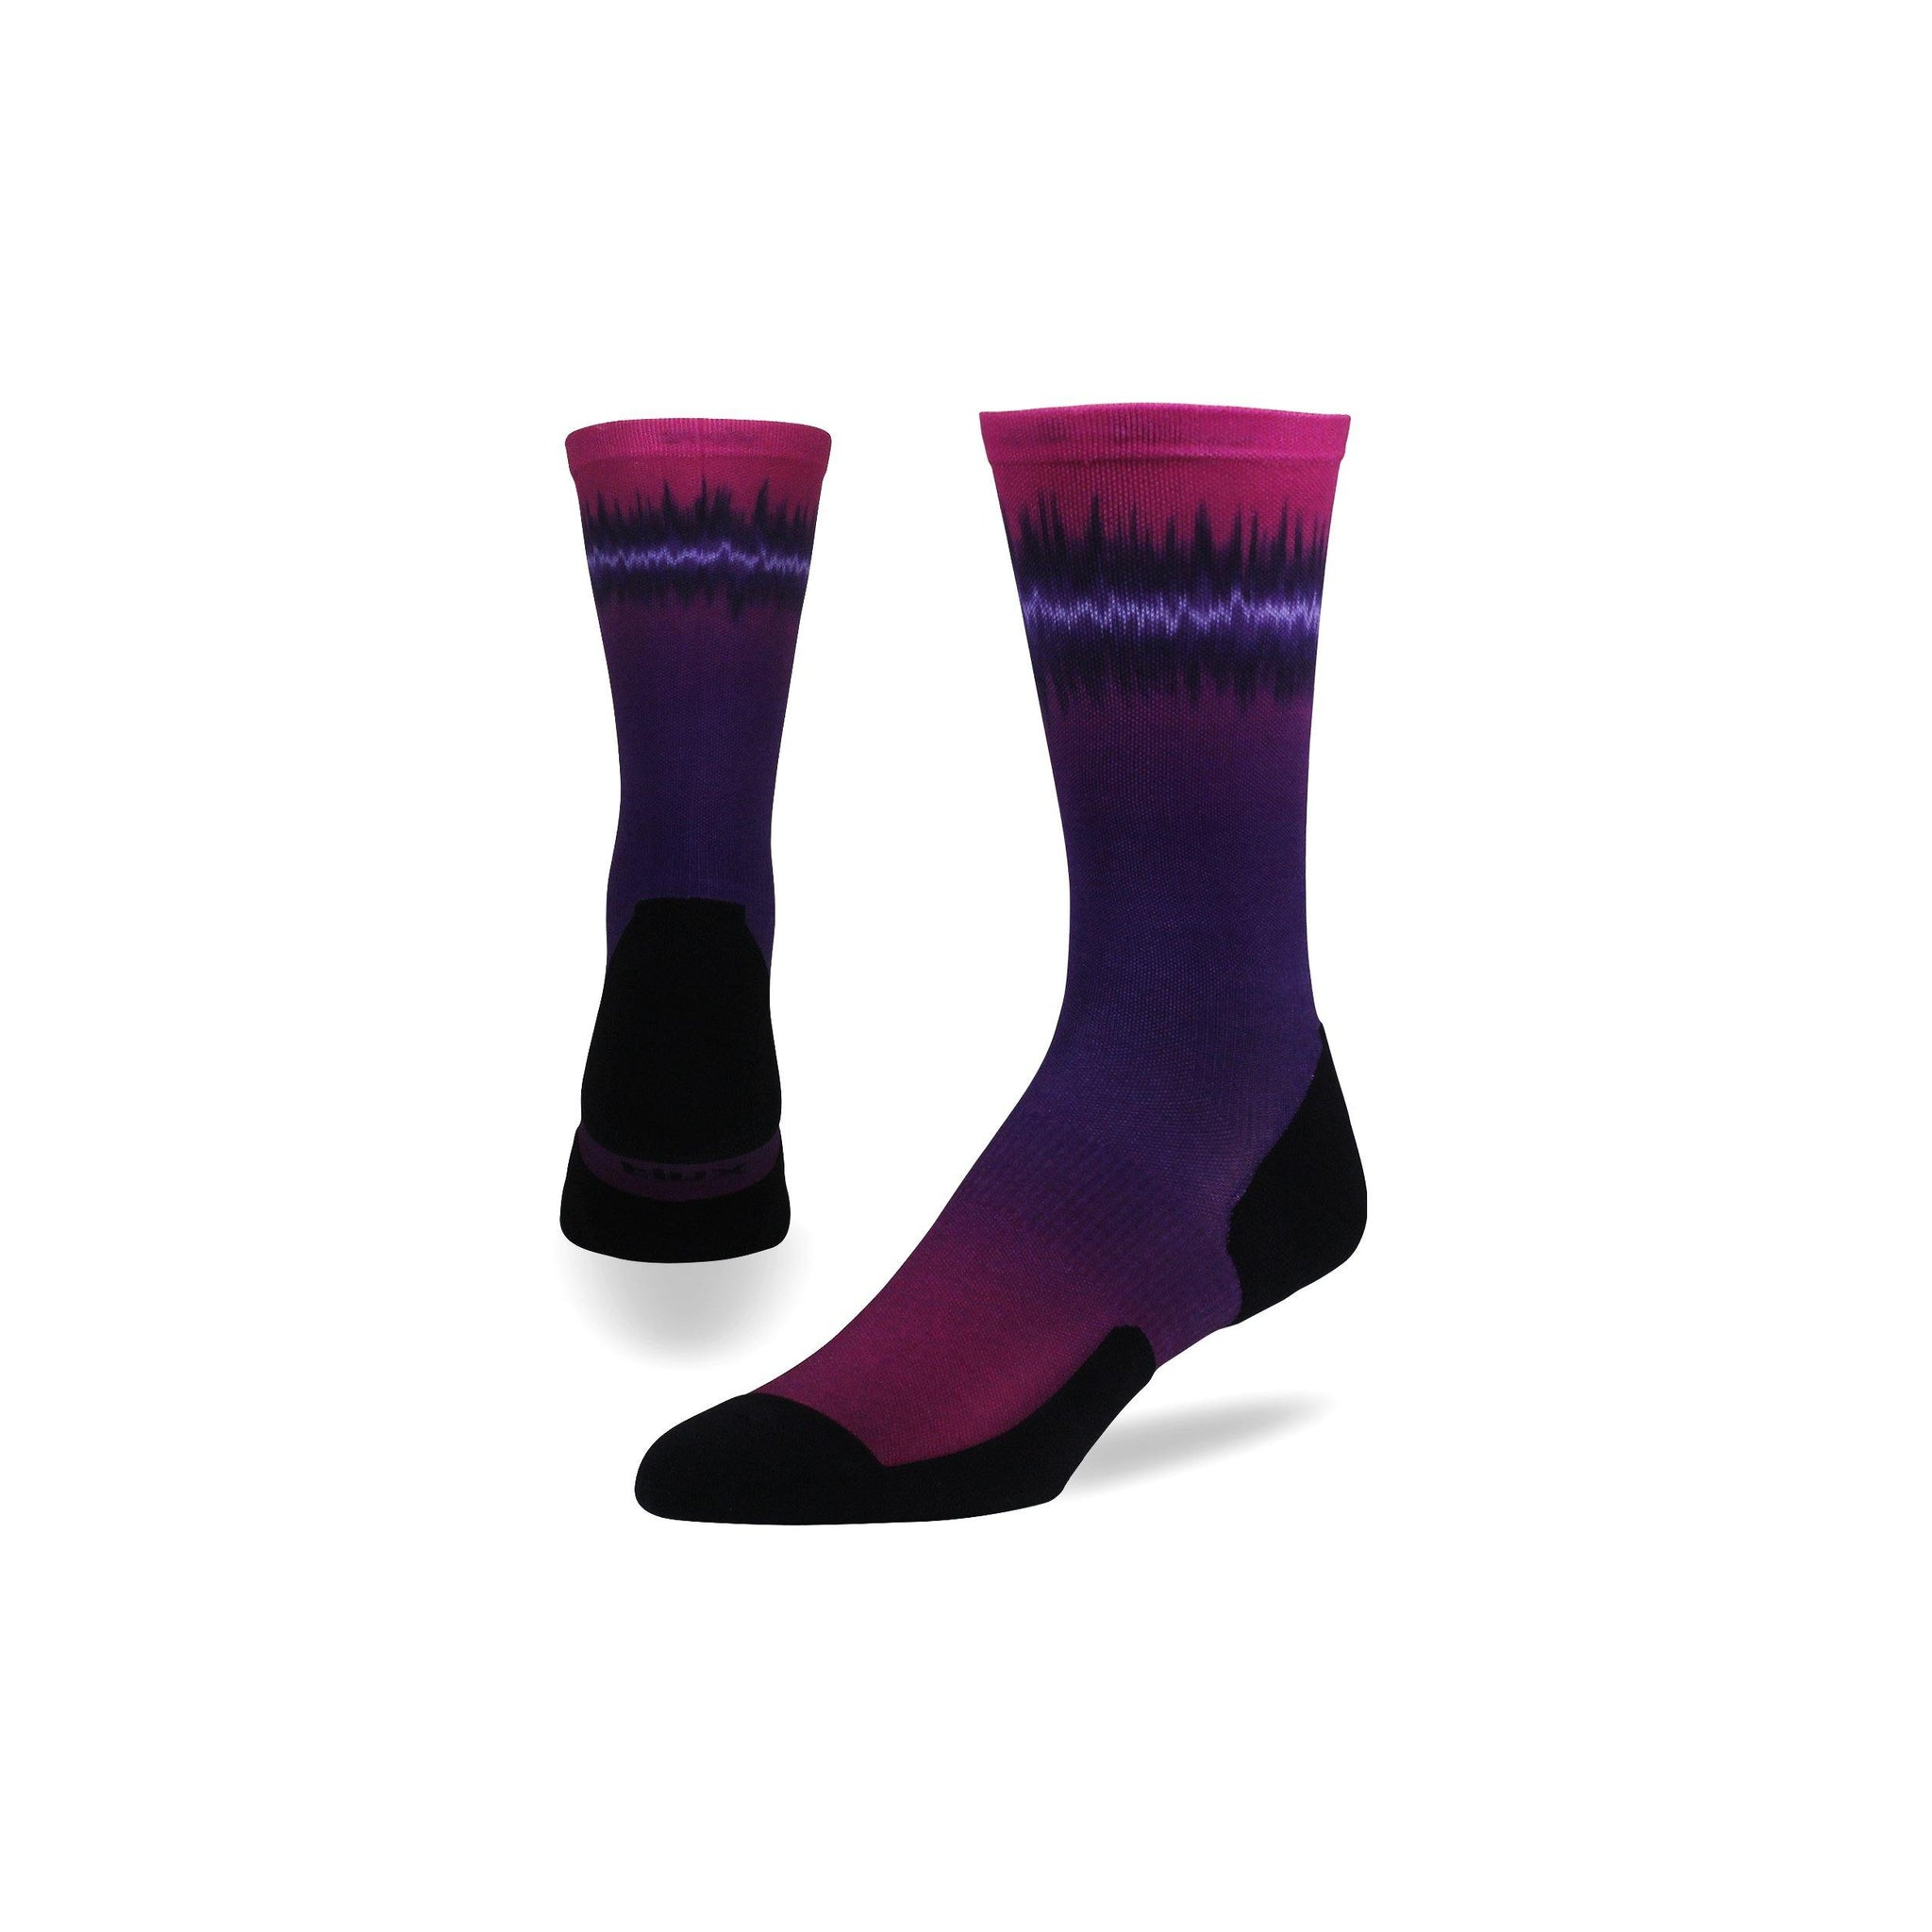 Soundwave Run Crew - Graduated Compression Socks